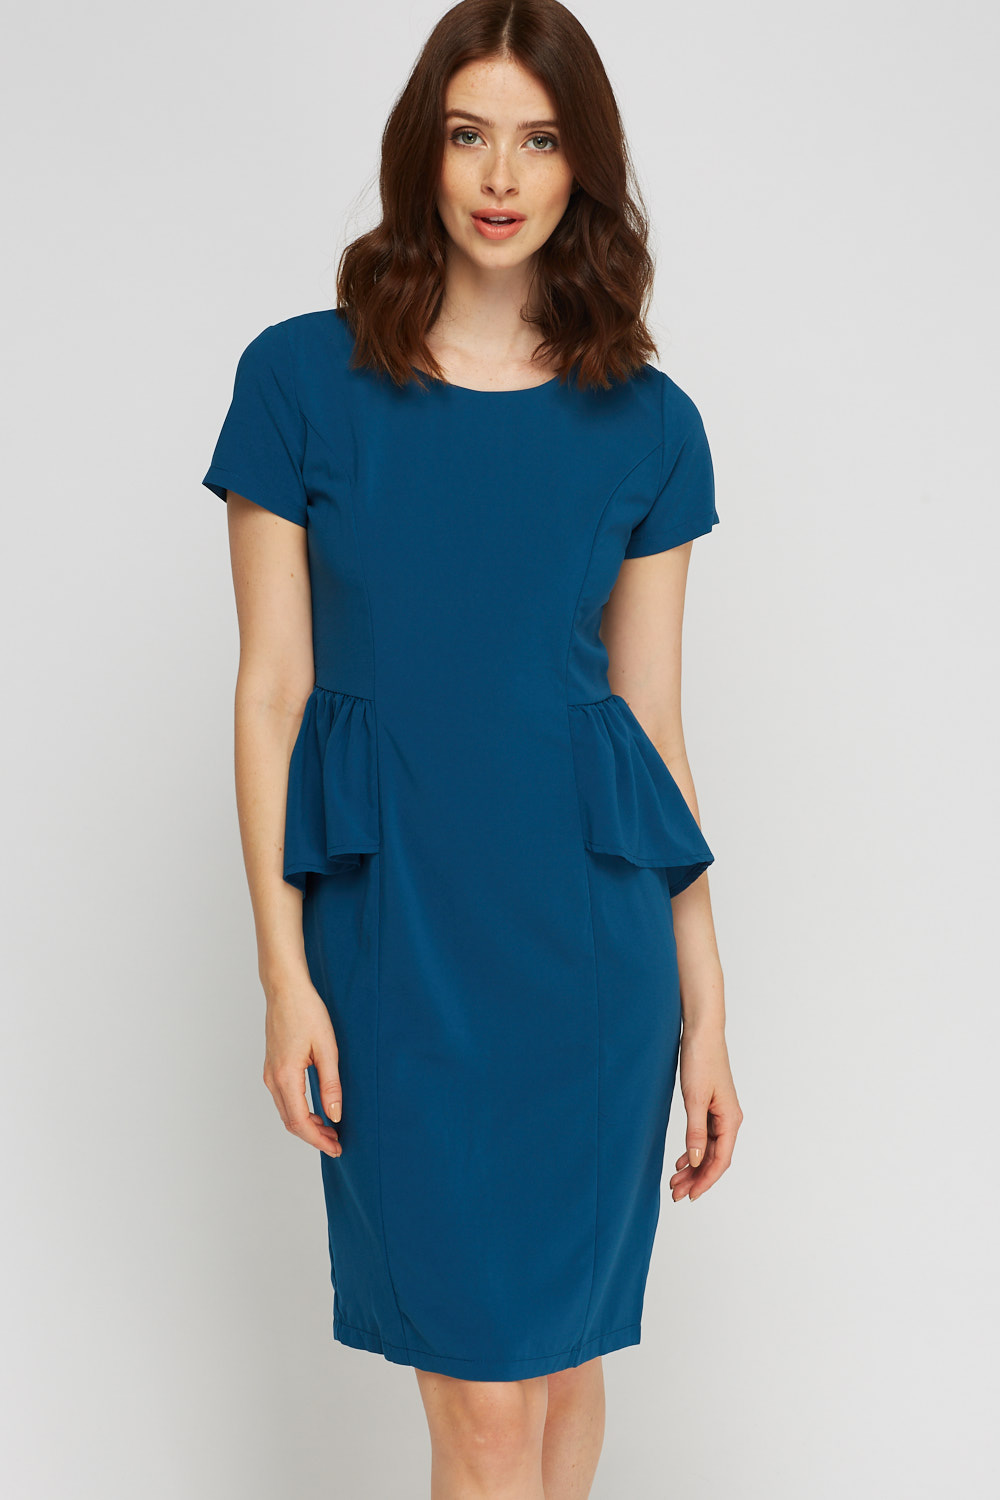 f79c8b19b46f Short Sleeve Peplum Midi Dress - Just £5